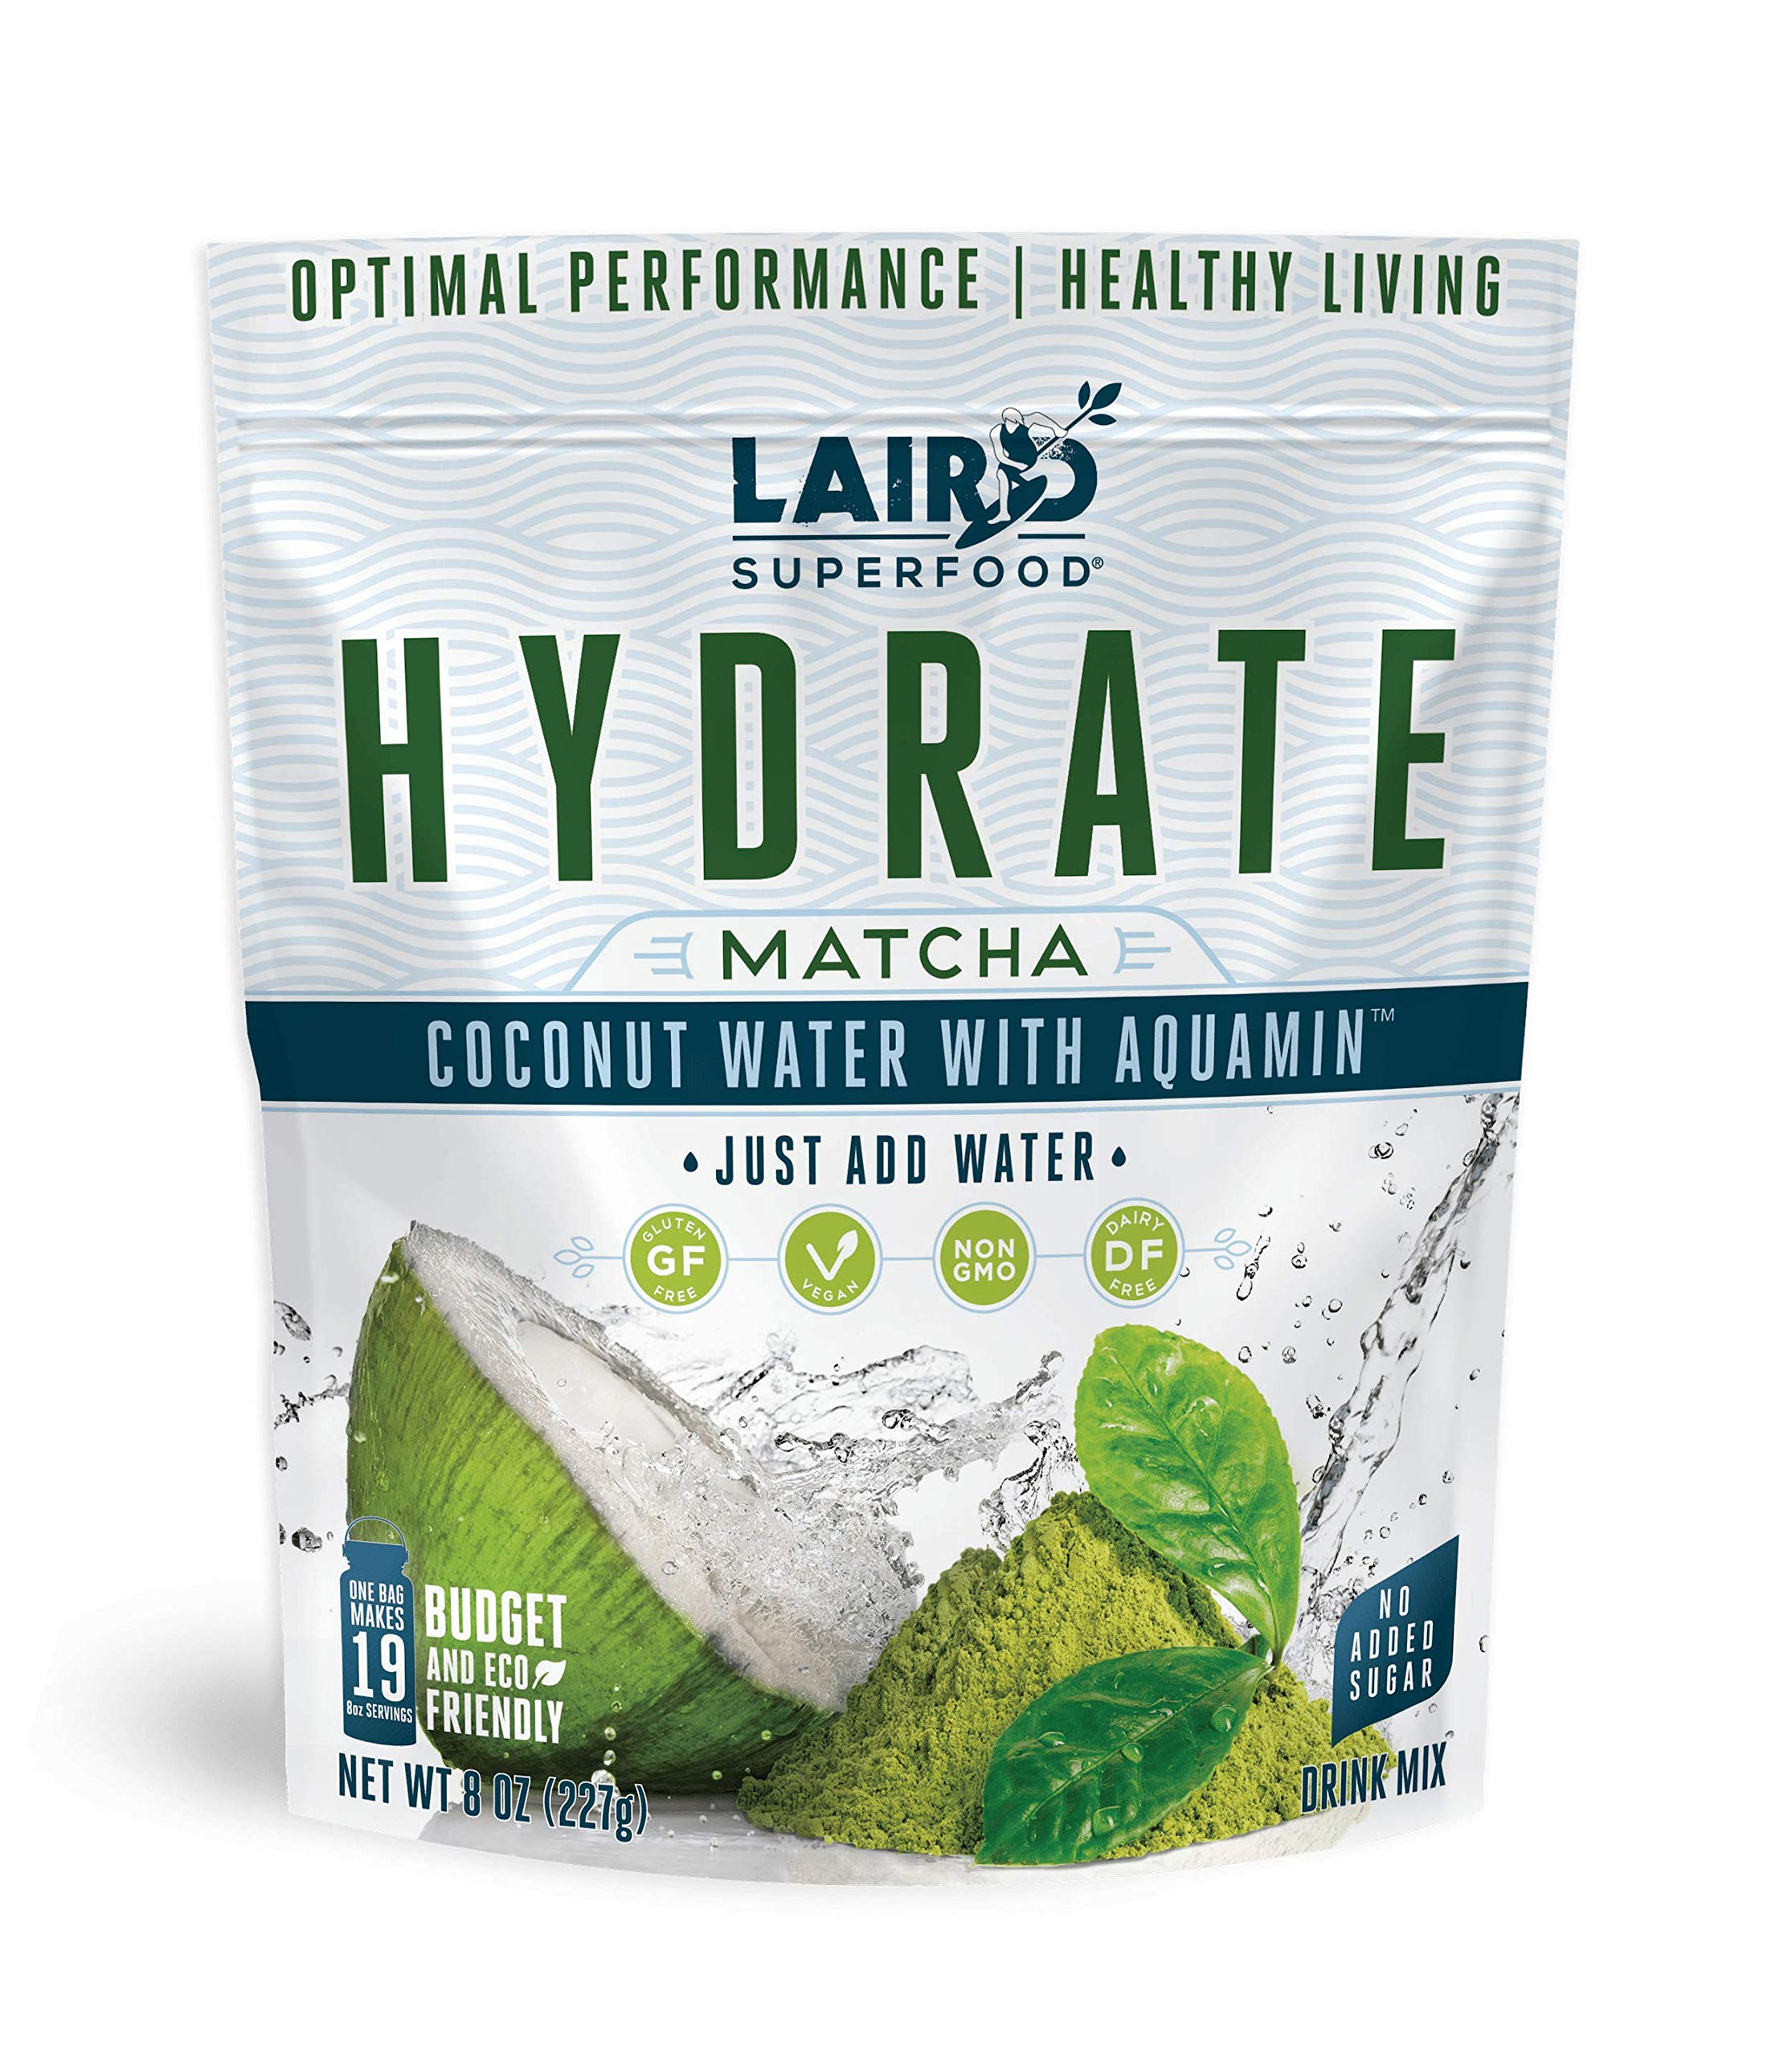 Laird Superfood Hydrate Coconut Water Matcha - Electrolyte Powder Hydration Drink Mix, 8oz Bag